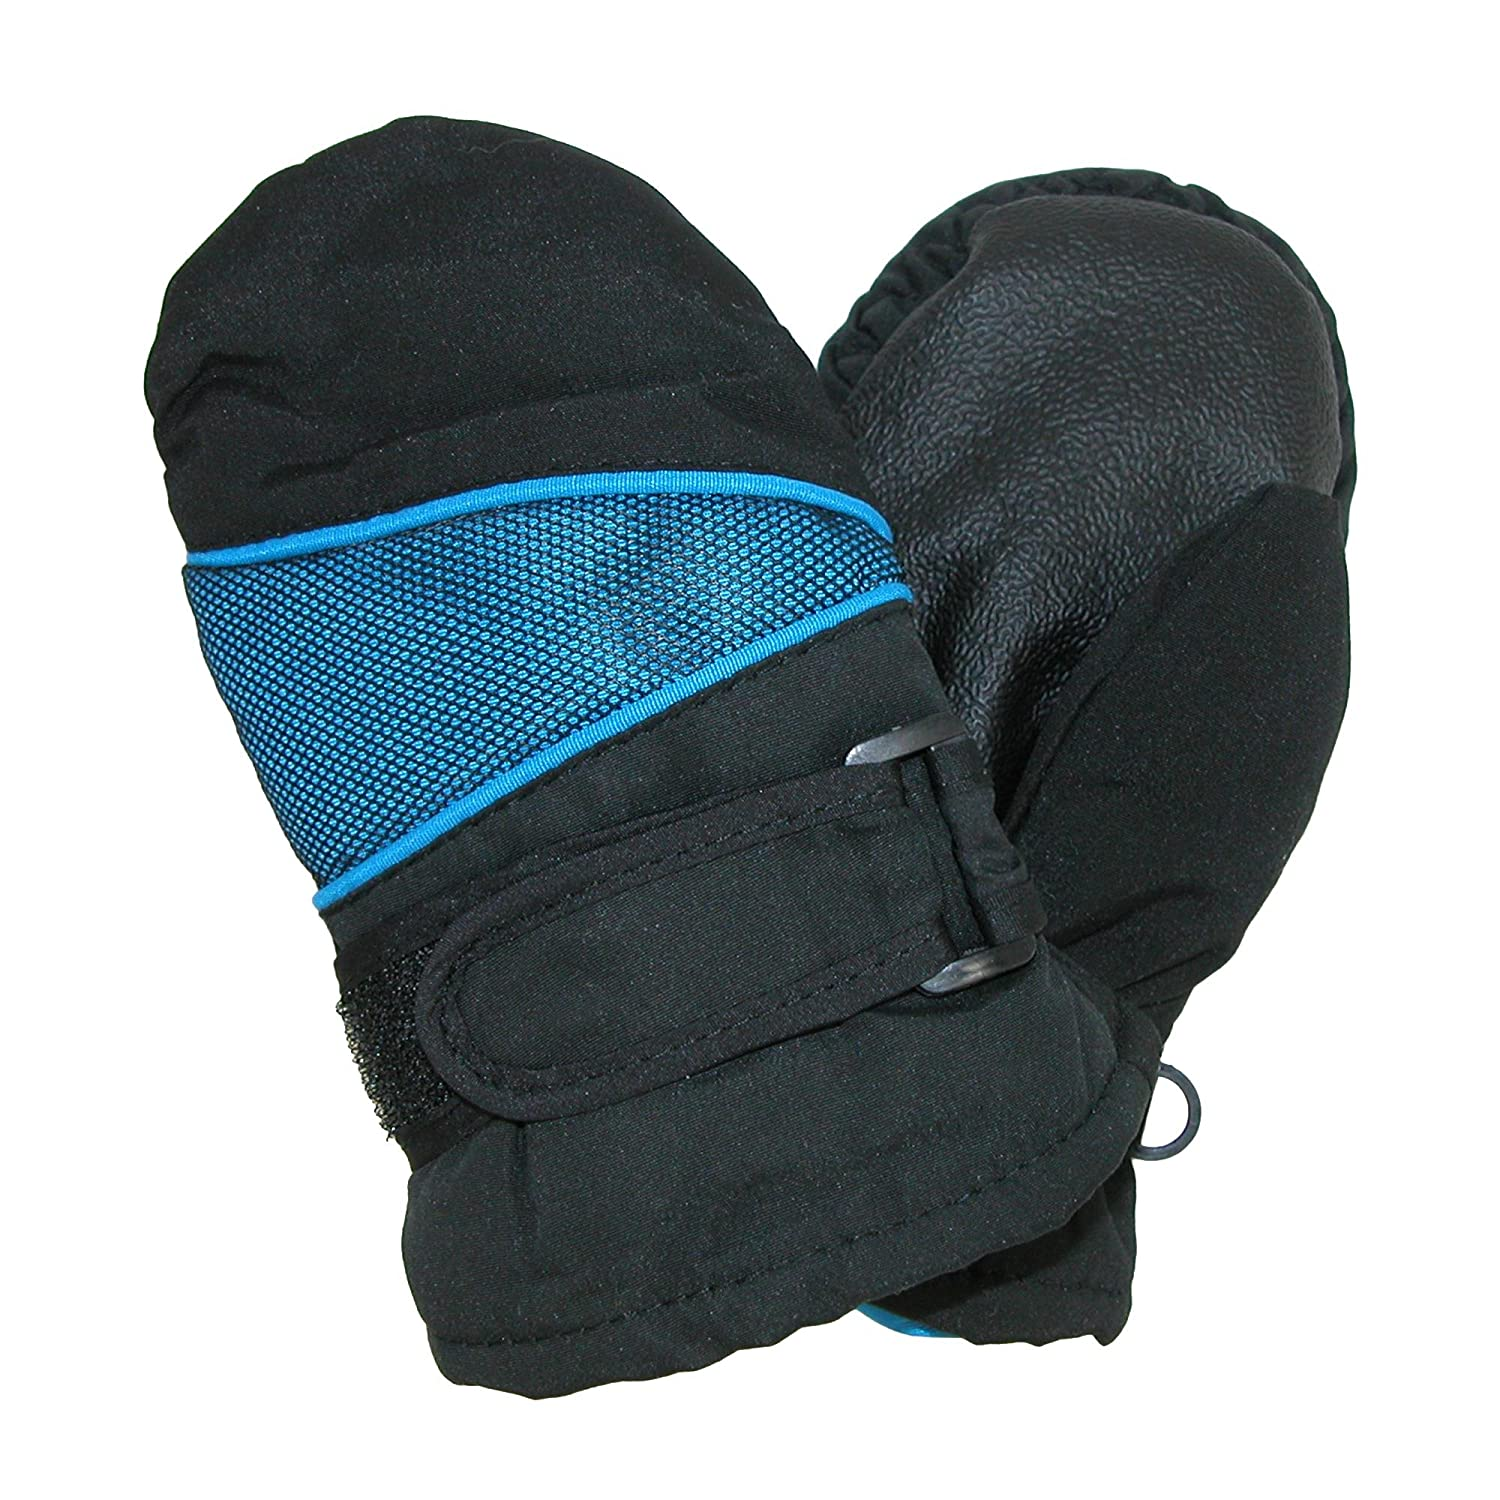 CTM Toddlers Waterproof Winter Mittens Navy GS-TM327-NAV